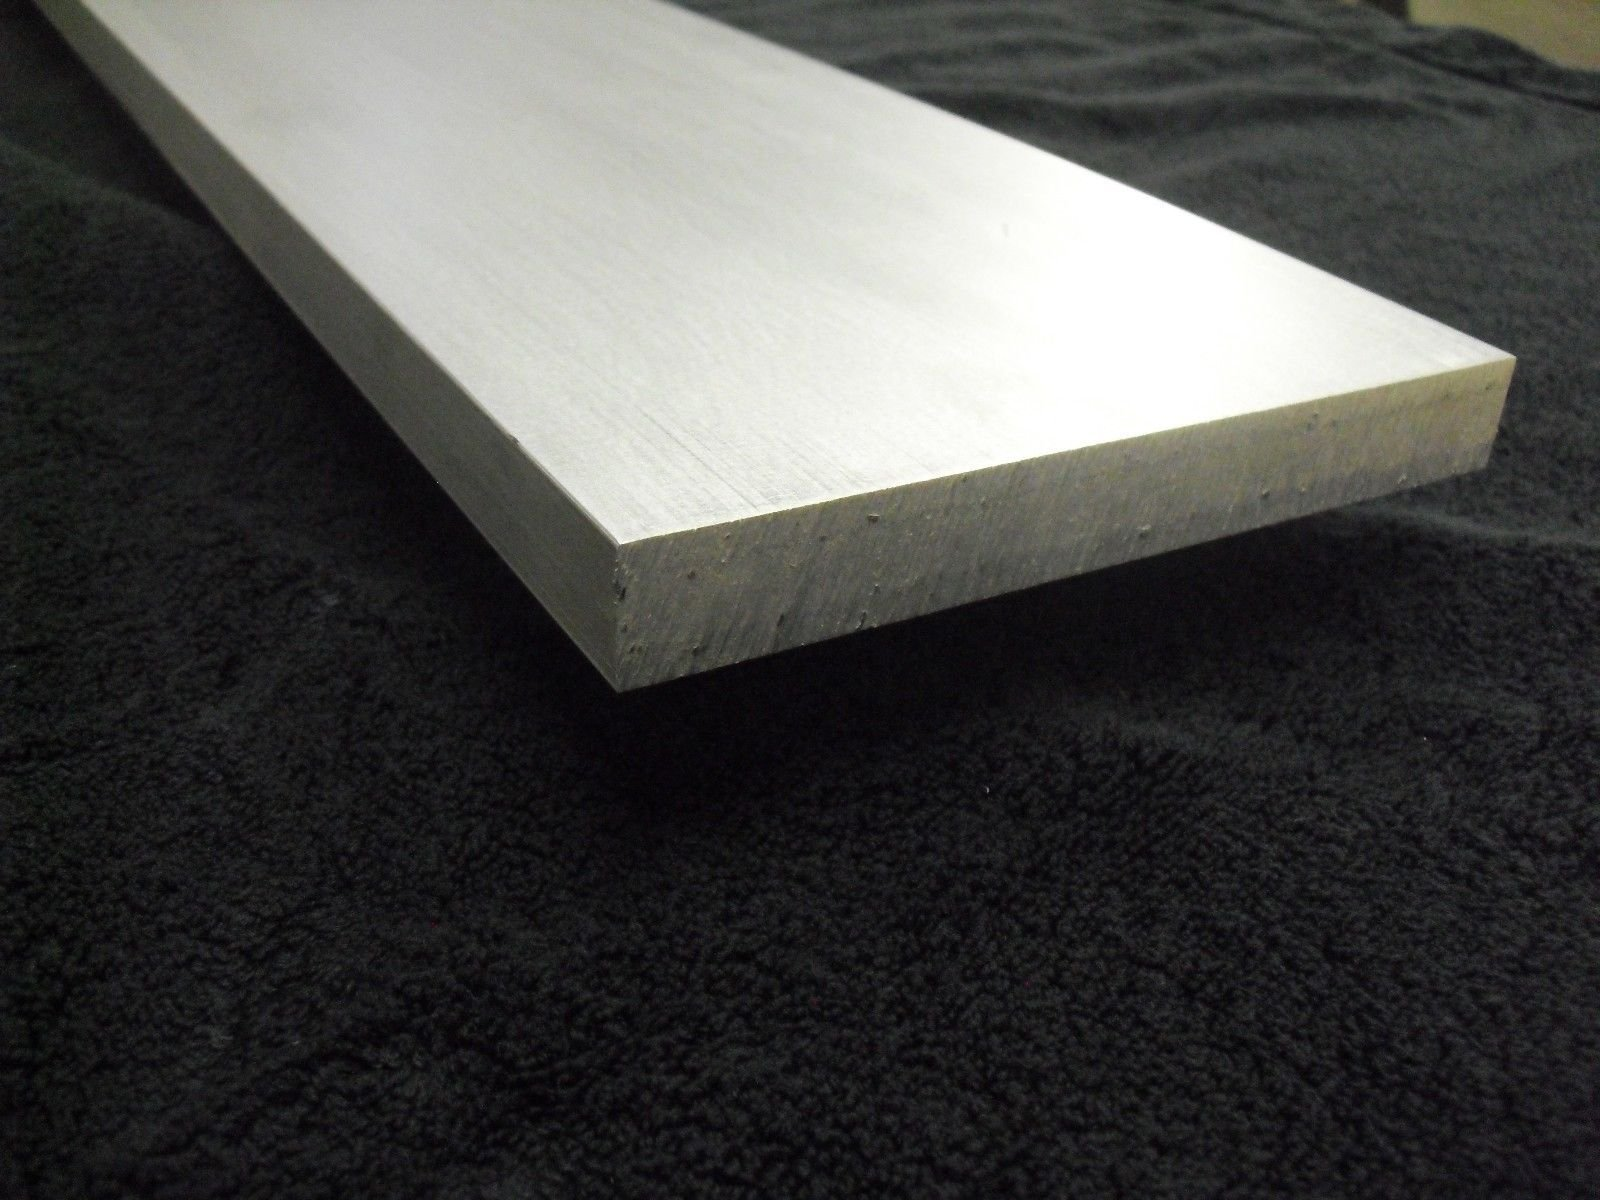 Mill Unpolished 36 Length T6511 Temper ASTM B221 Extruded 4 Width 1//4 Thickness 6061 Aluminum Rectangular Bar Finish